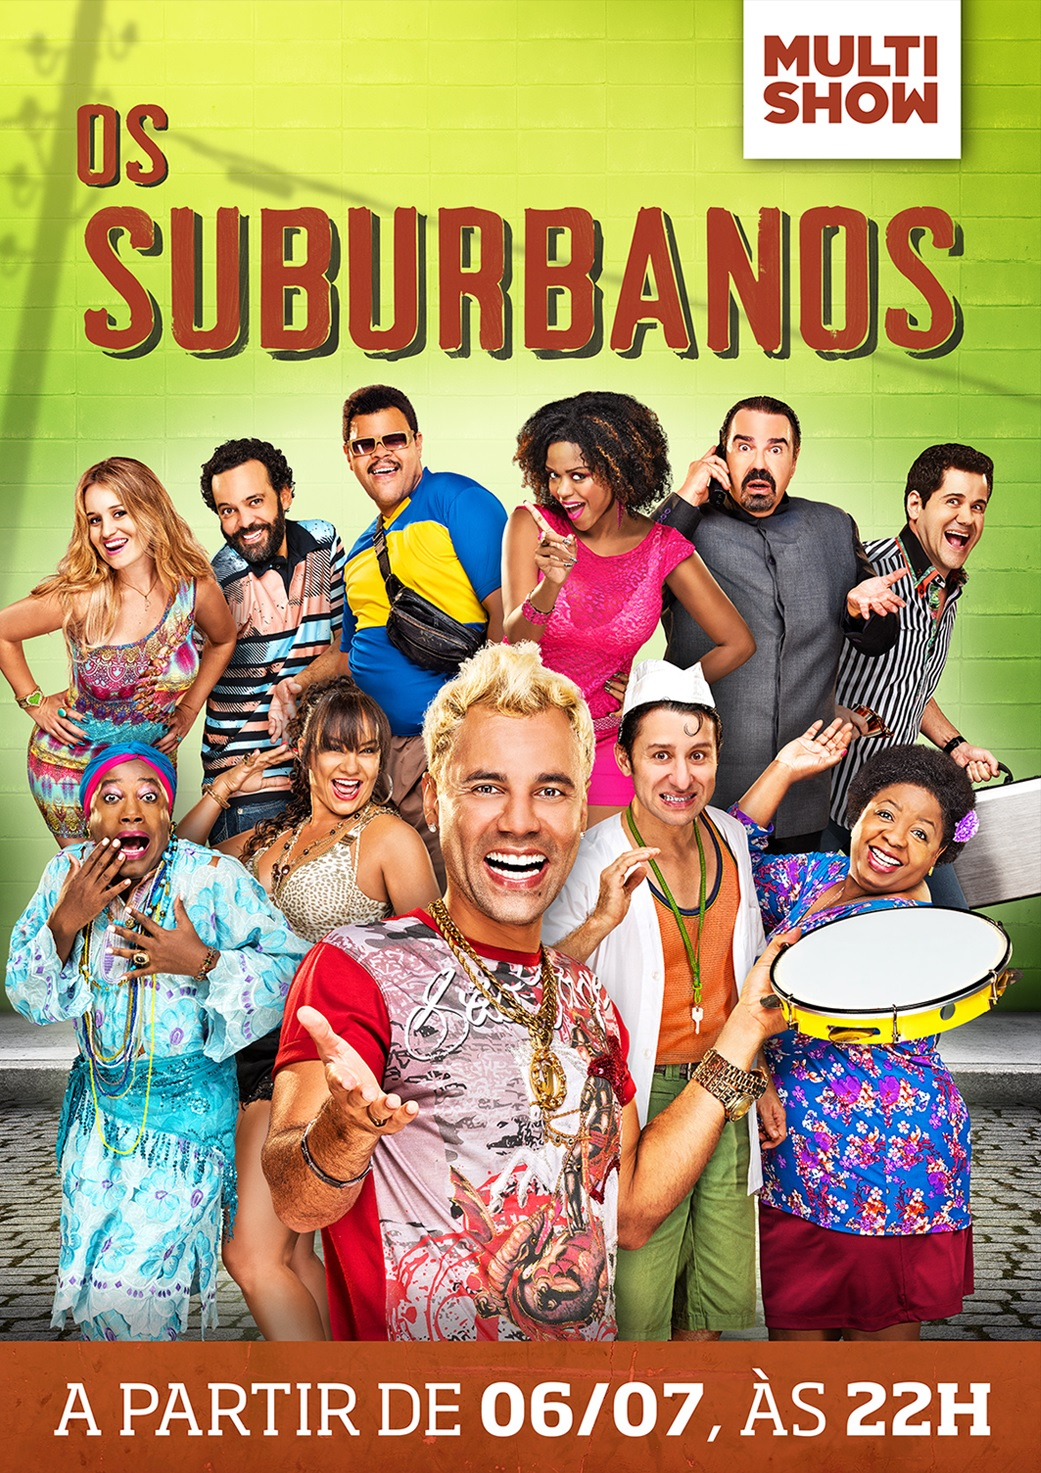 Download Filme Os Suburbanos O Filme Torrent 2021 Qualidade Hd